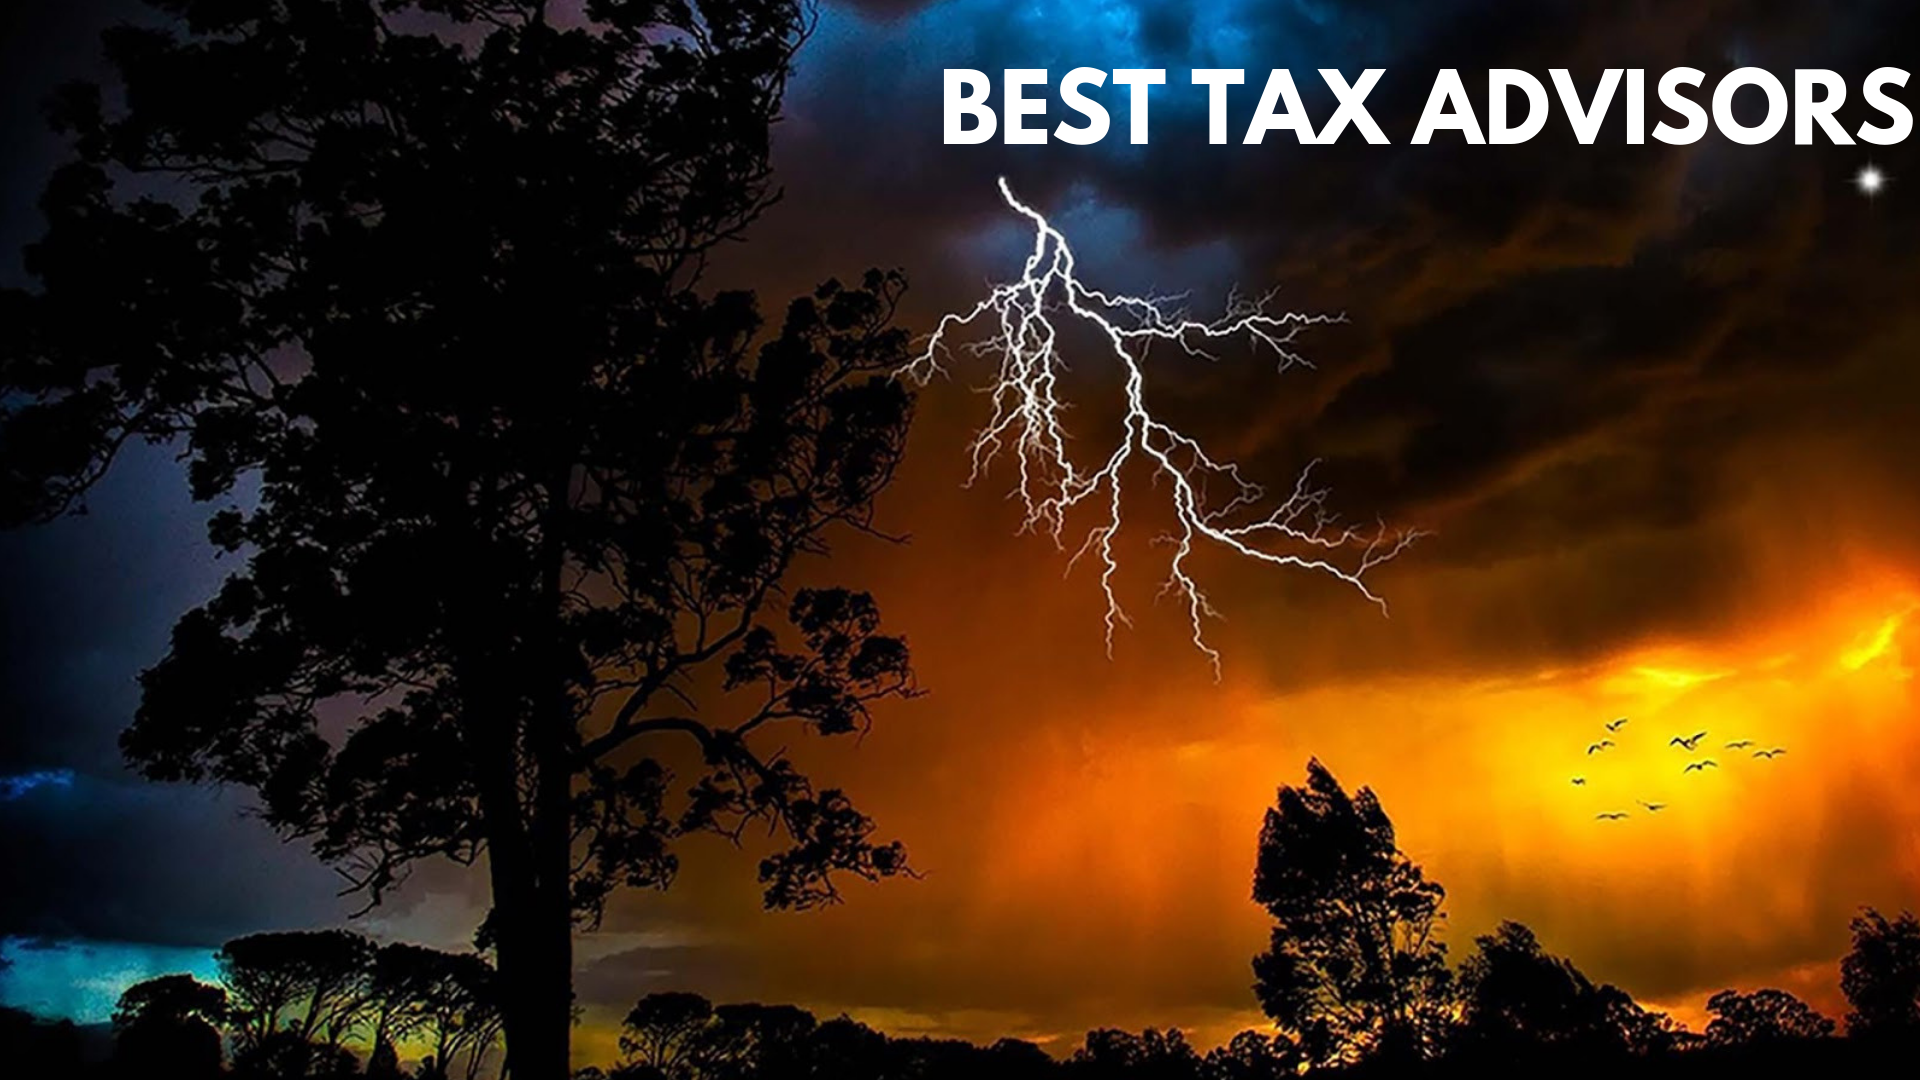 tax advisors , best tax advisors